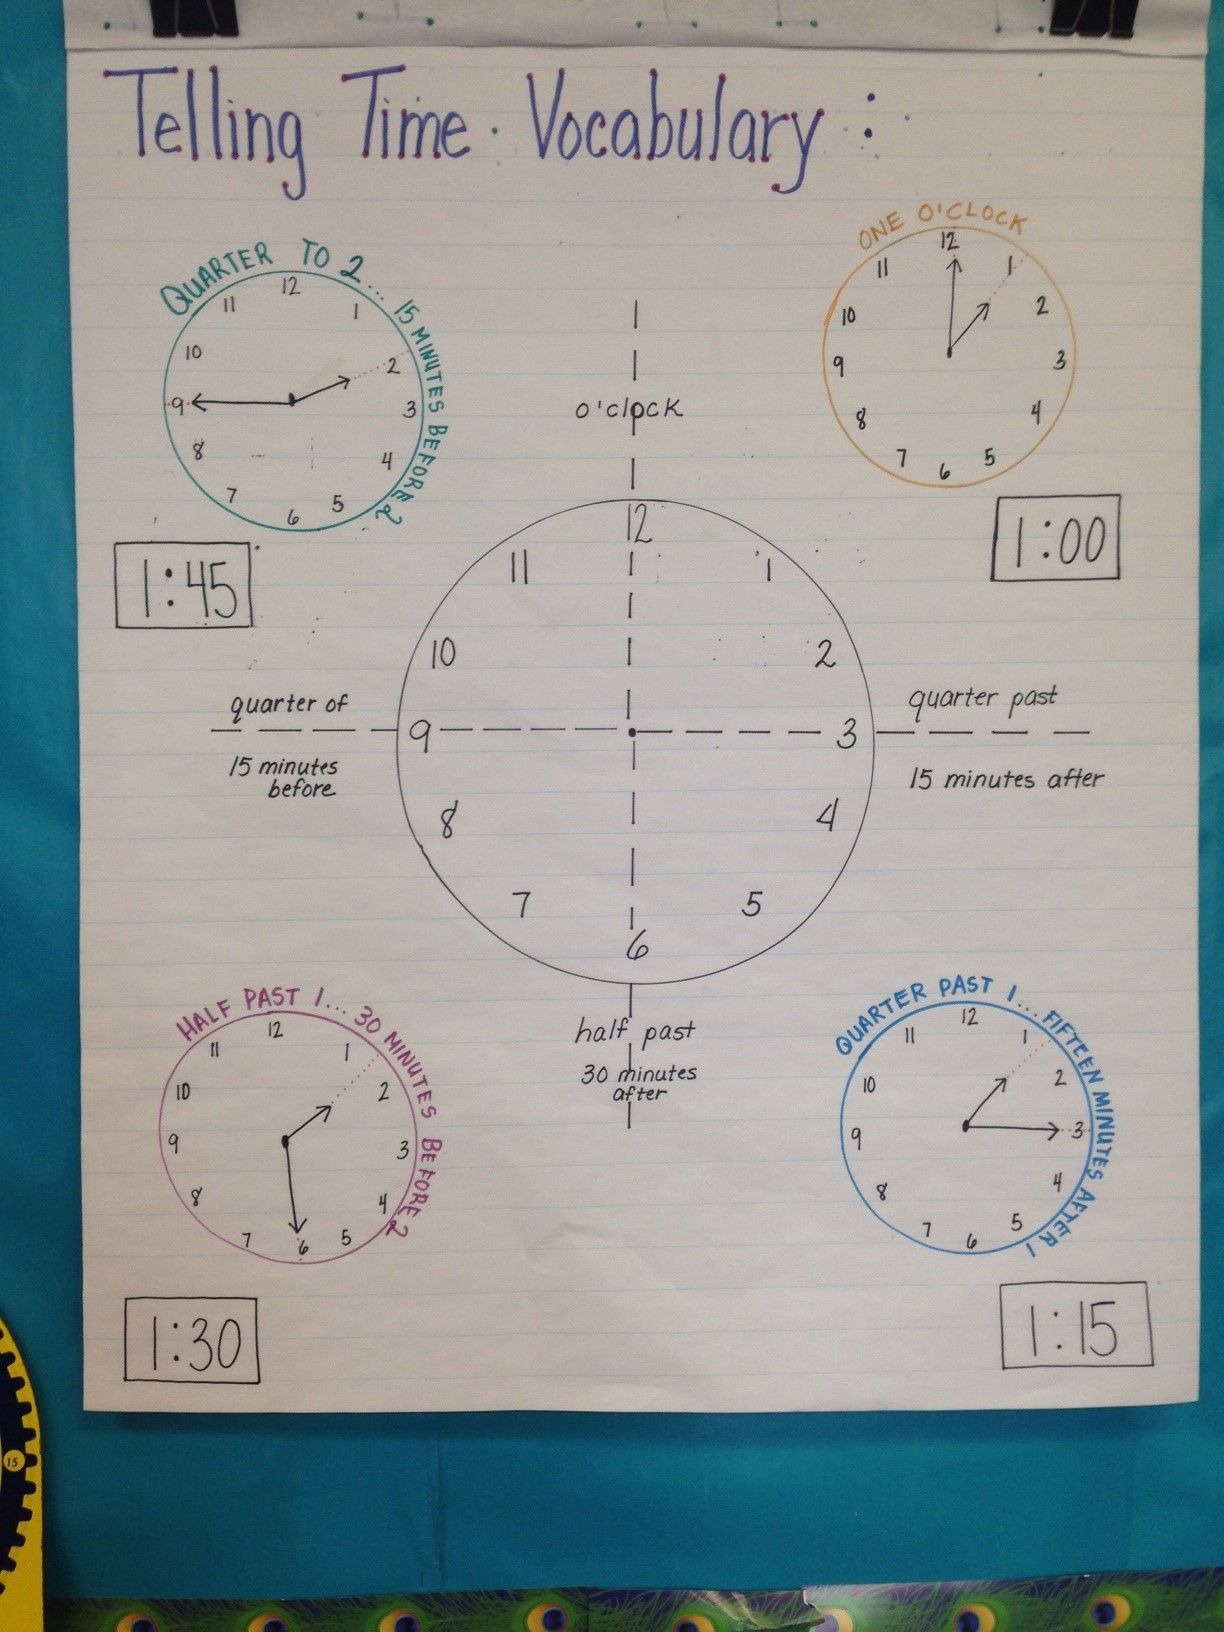 Telling Time 2nd Grade Vocabulary Visual I Created This Chart To Illustrate And List The